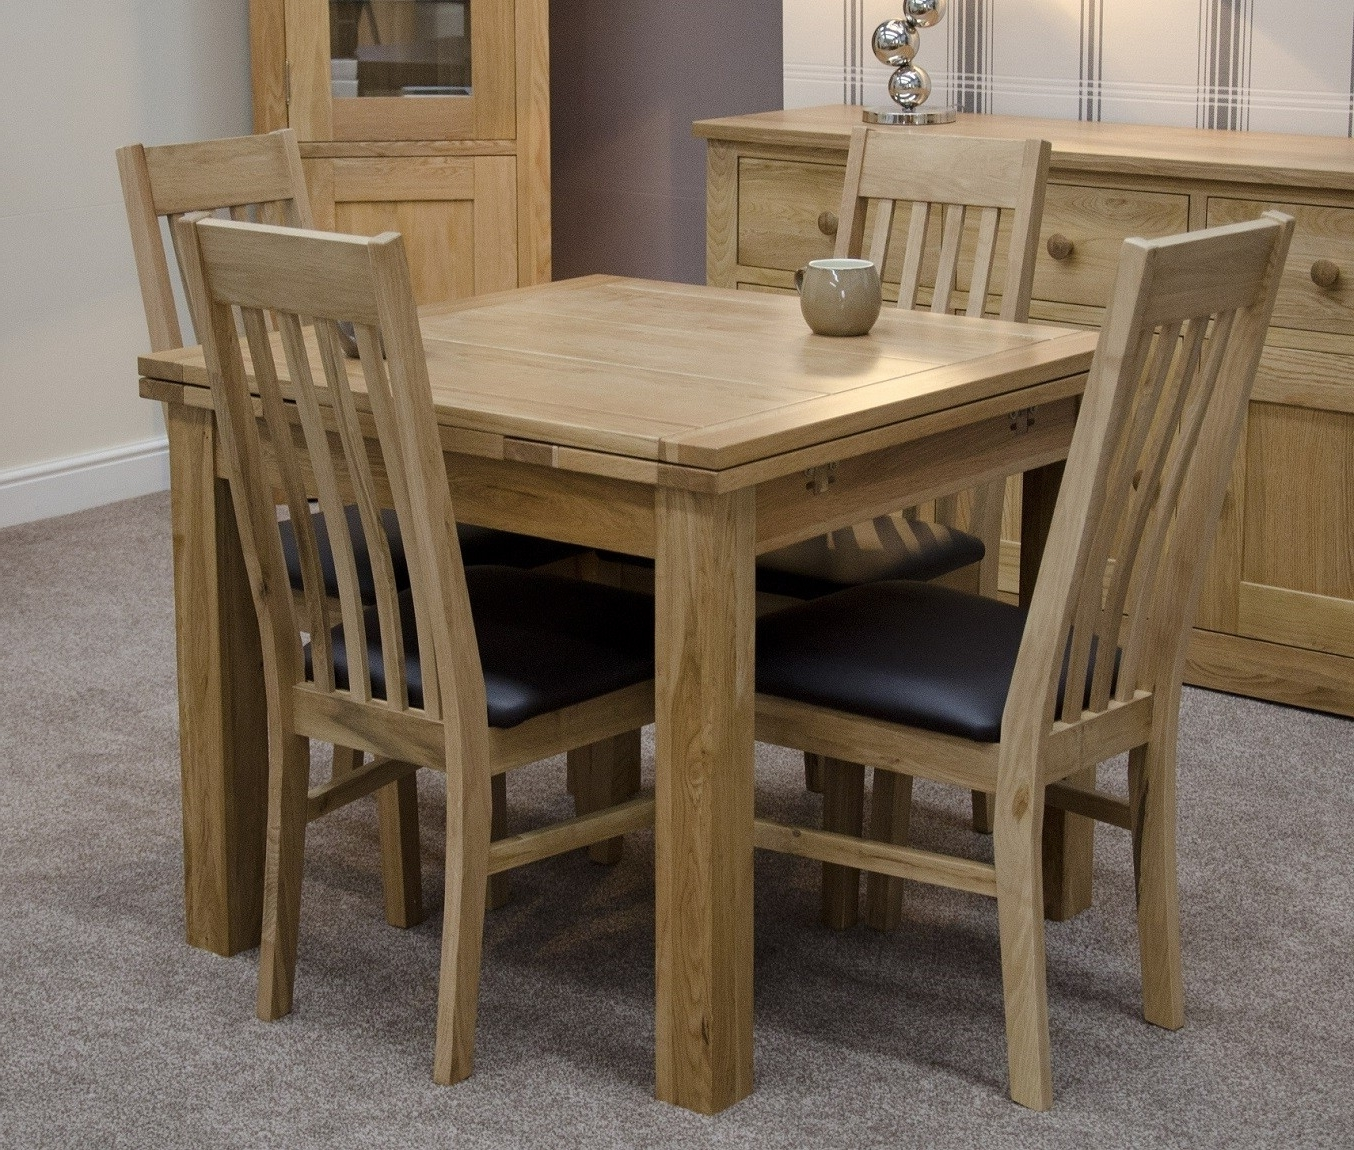 Oak Furniture Uk With Best And Newest Extending Solid Oak Dining Tables (View 17 of 25)